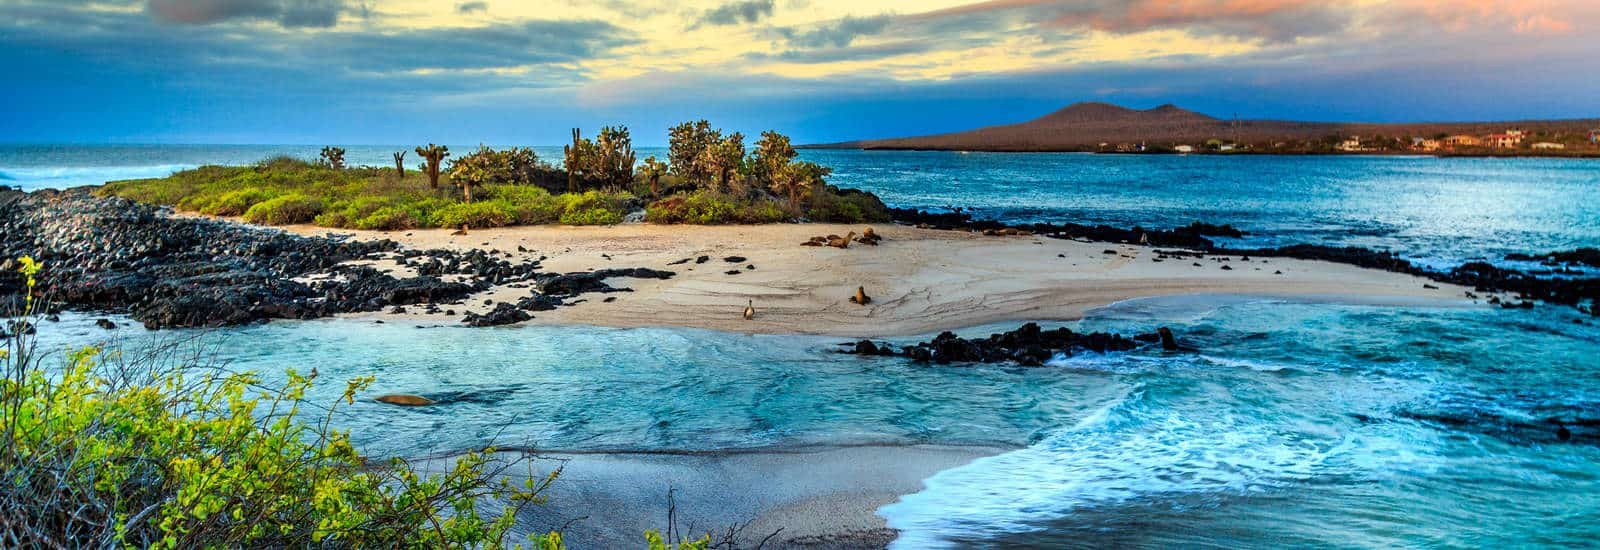 Ultimate Galapagos Travel Guide